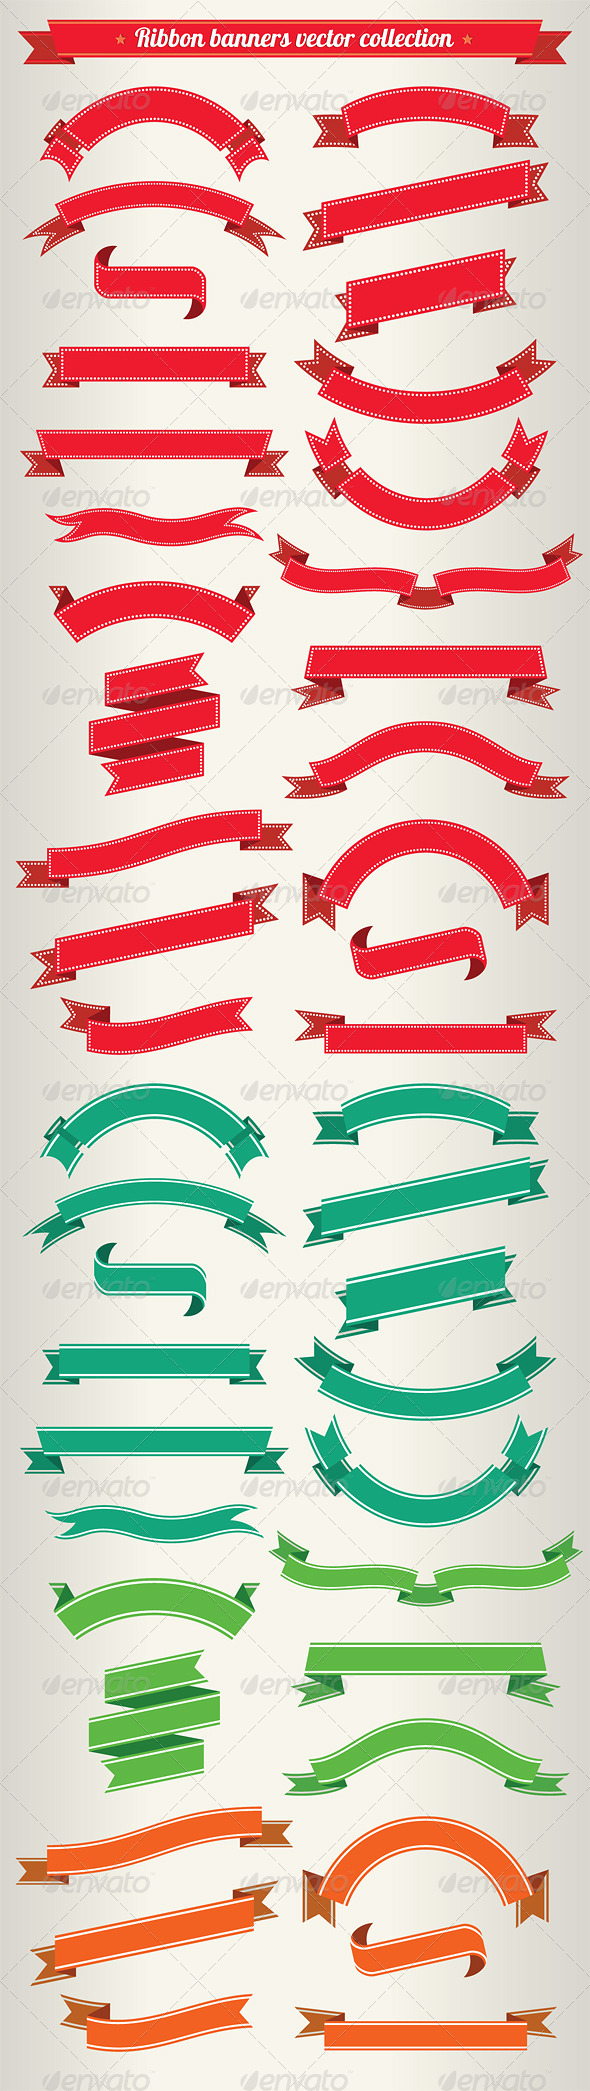 Ribbon Banners Vector Collection - Flourishes / Swirls Decorative